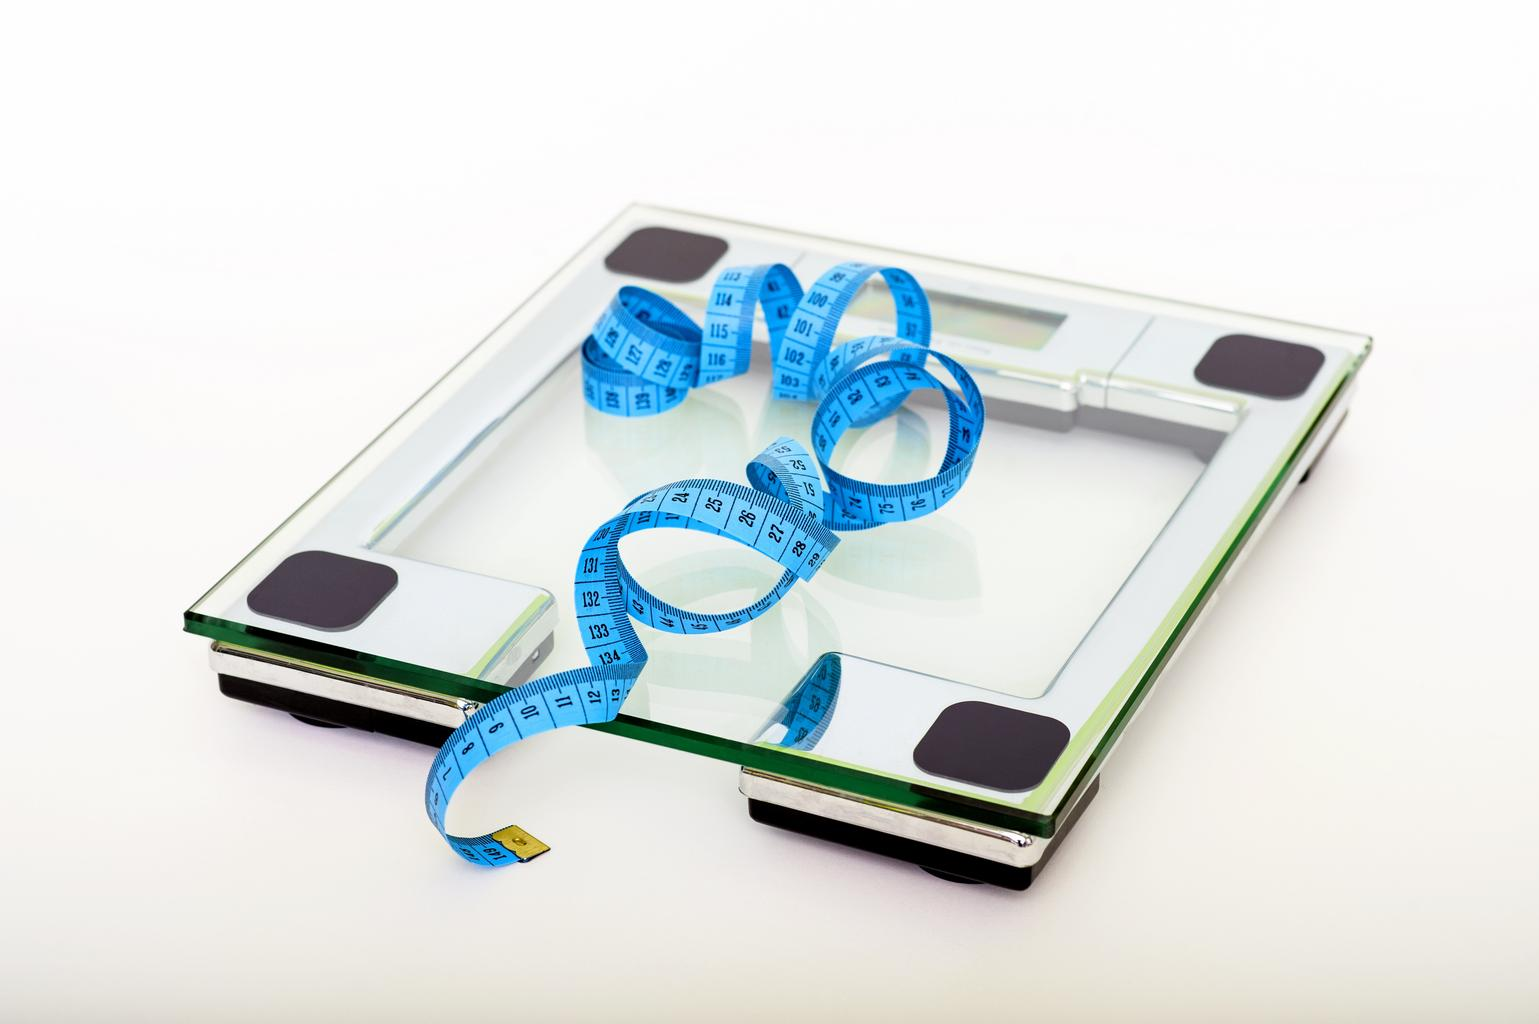 A tape measure on a scale ot demonstrate weight loss